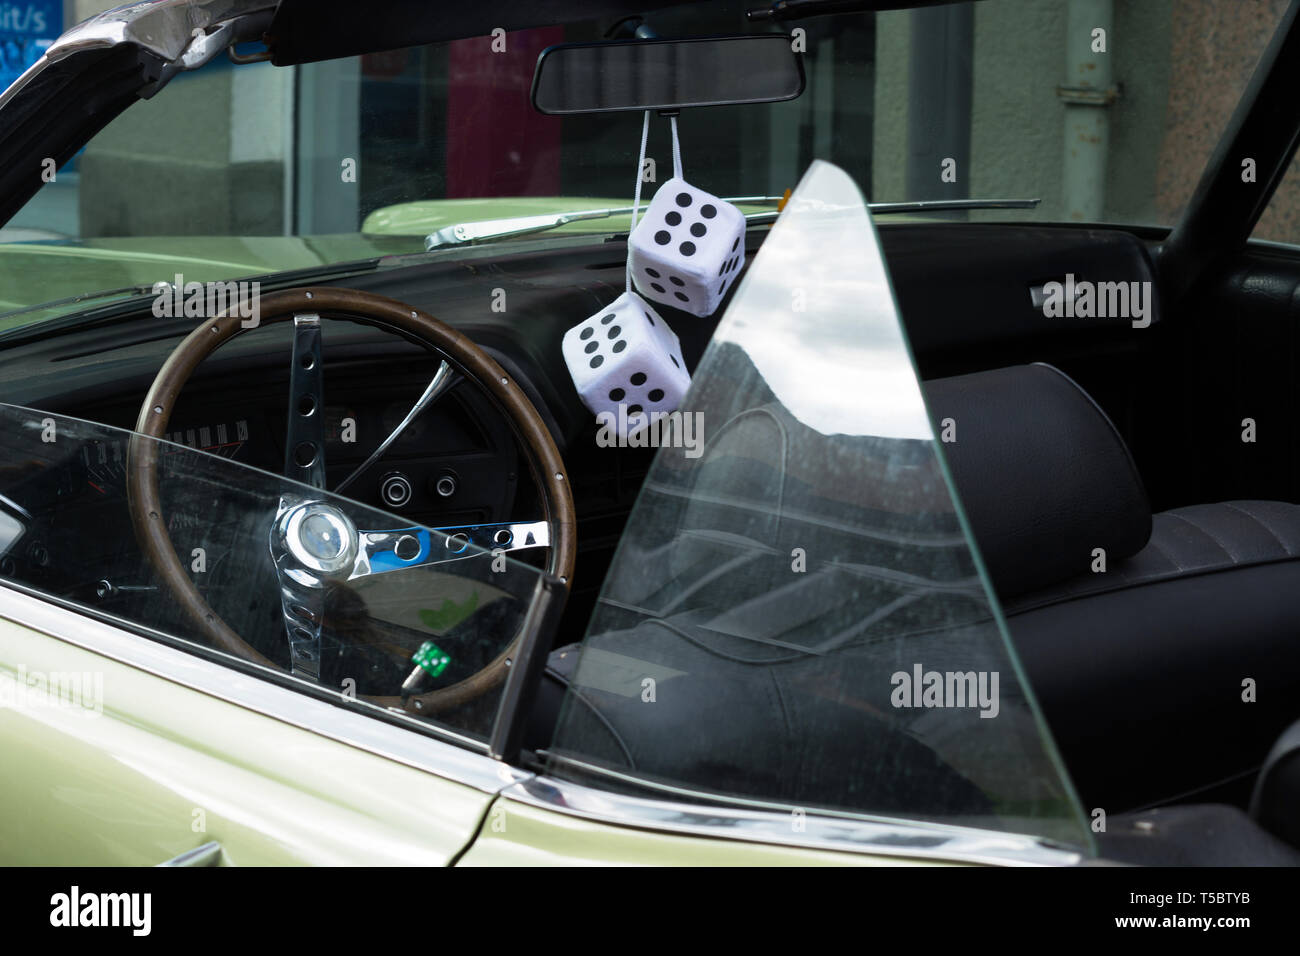 Fuzzy Dice on the rearview mirror of a vintage American car - Stock Image